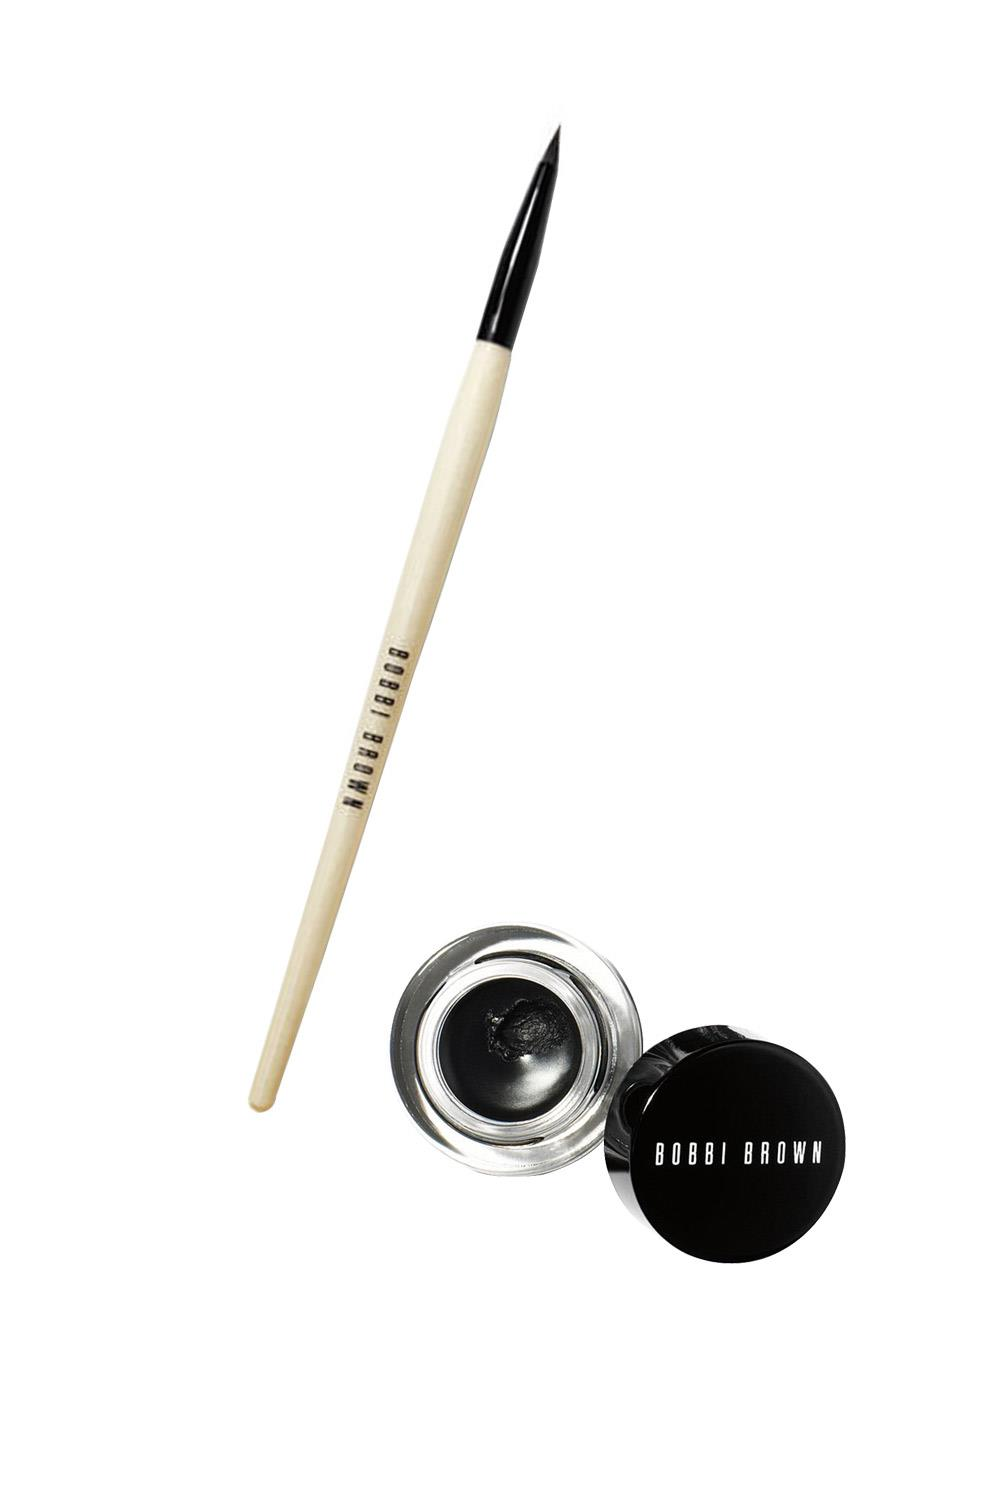 maquillaje ojos fácil Long Wear Gel Eyeliner de Bobbi Brown, 27€. En gel